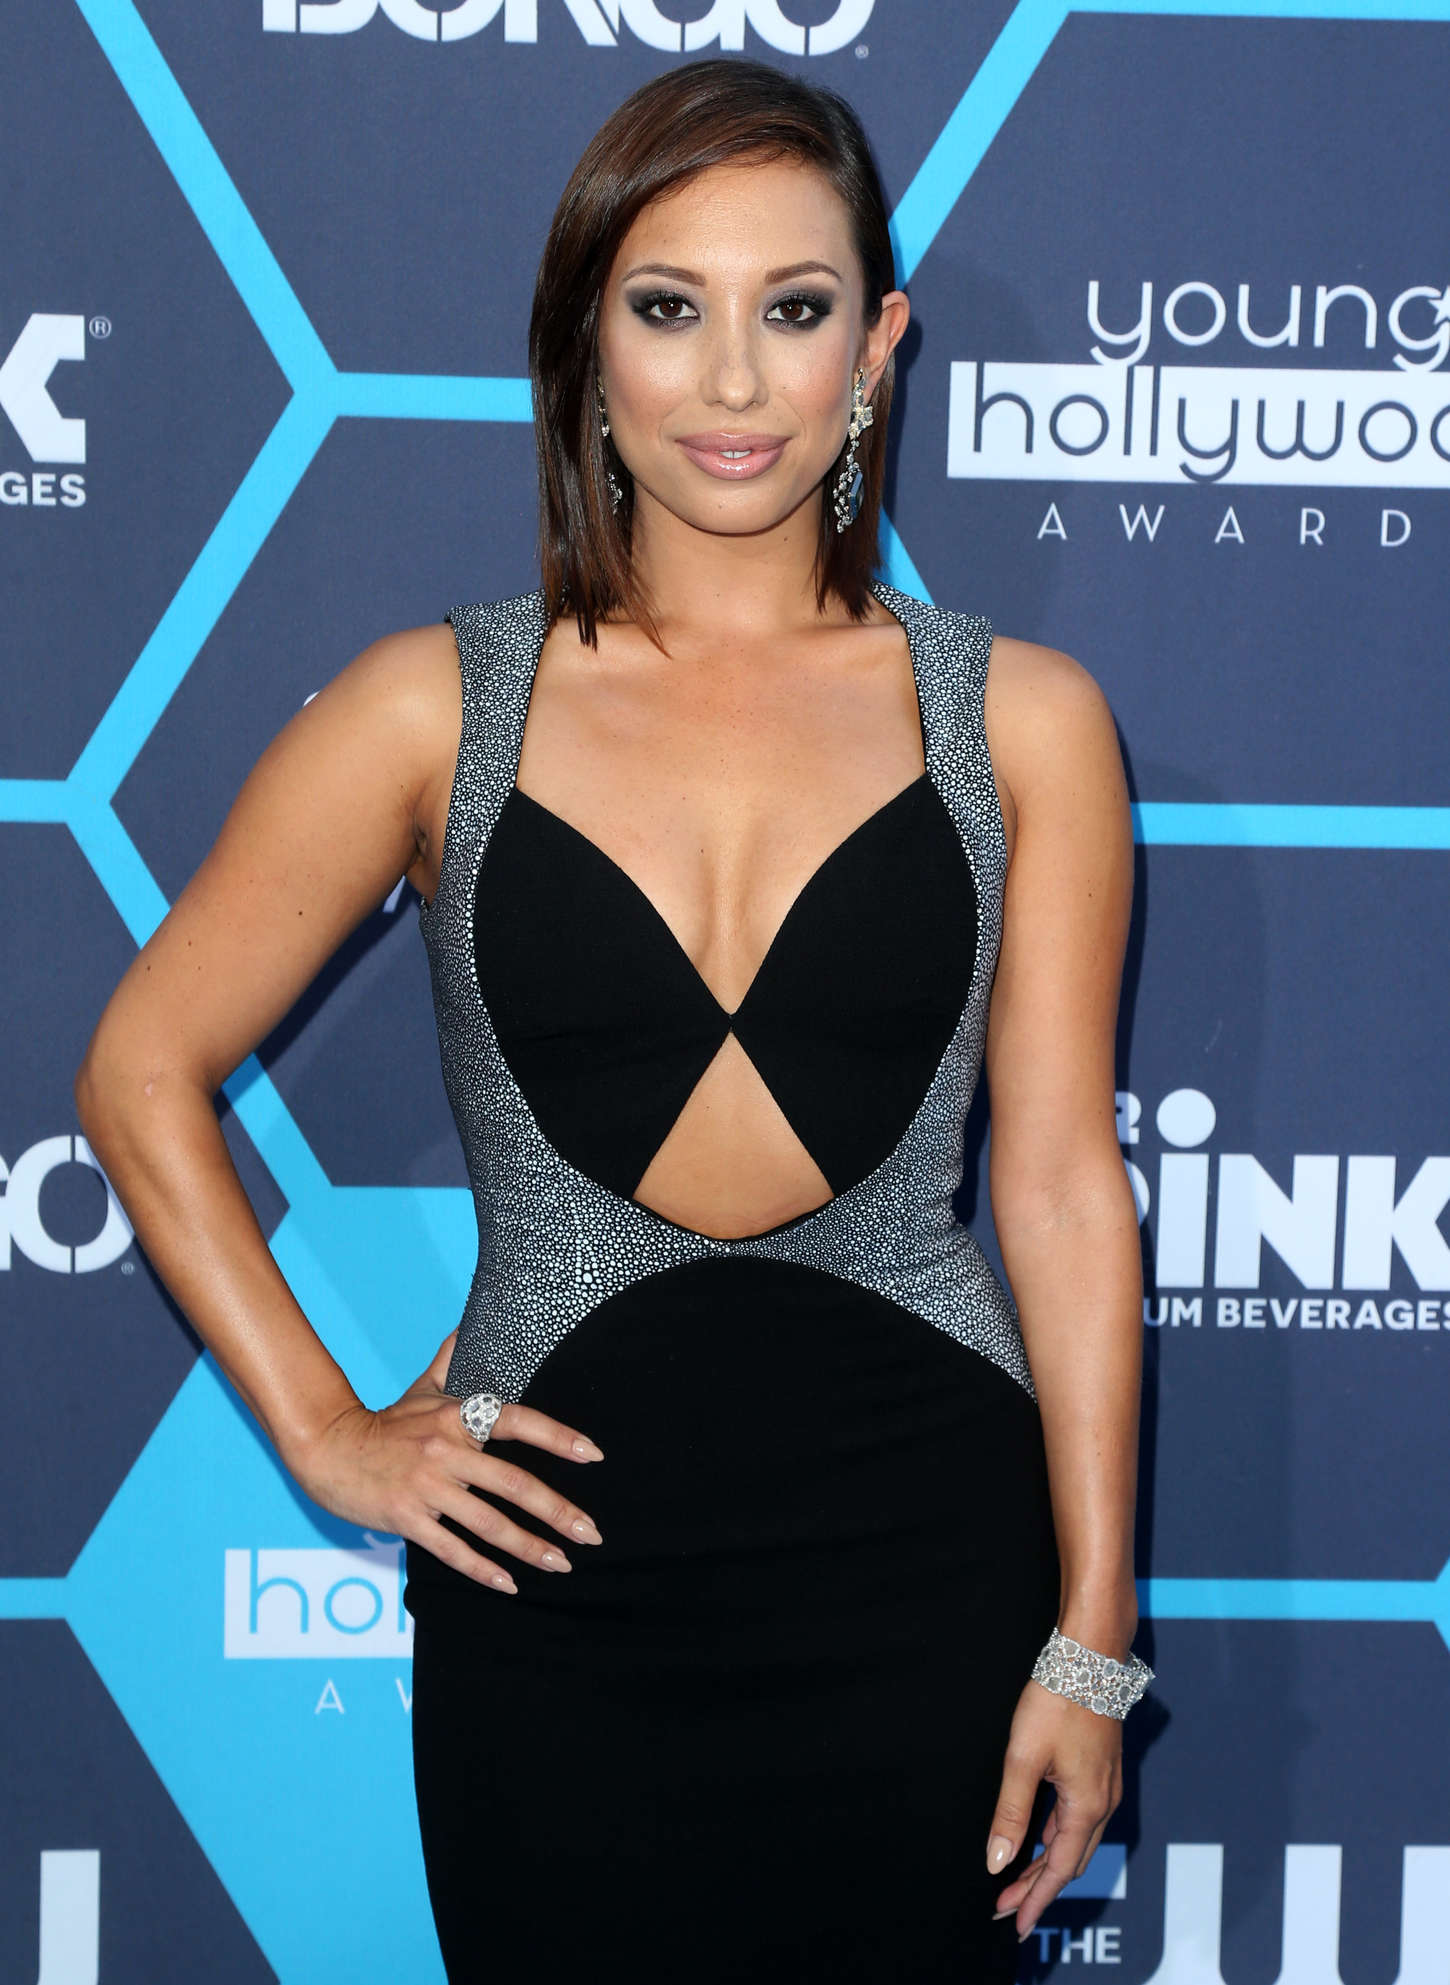 Cheryl Burke Young Hollywood Awards